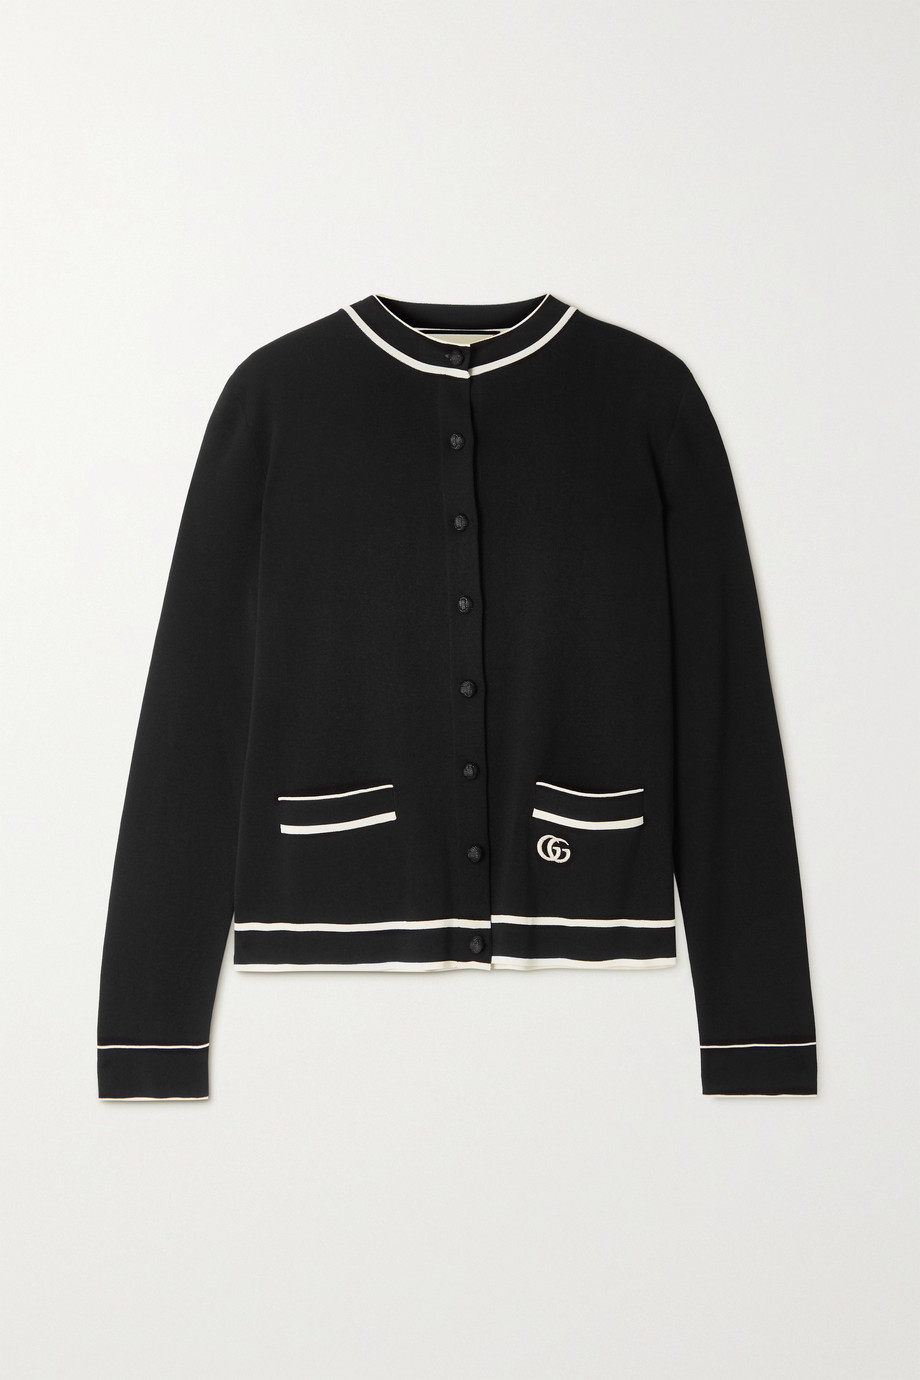 Gucci Striped embroidered knitted cardigan